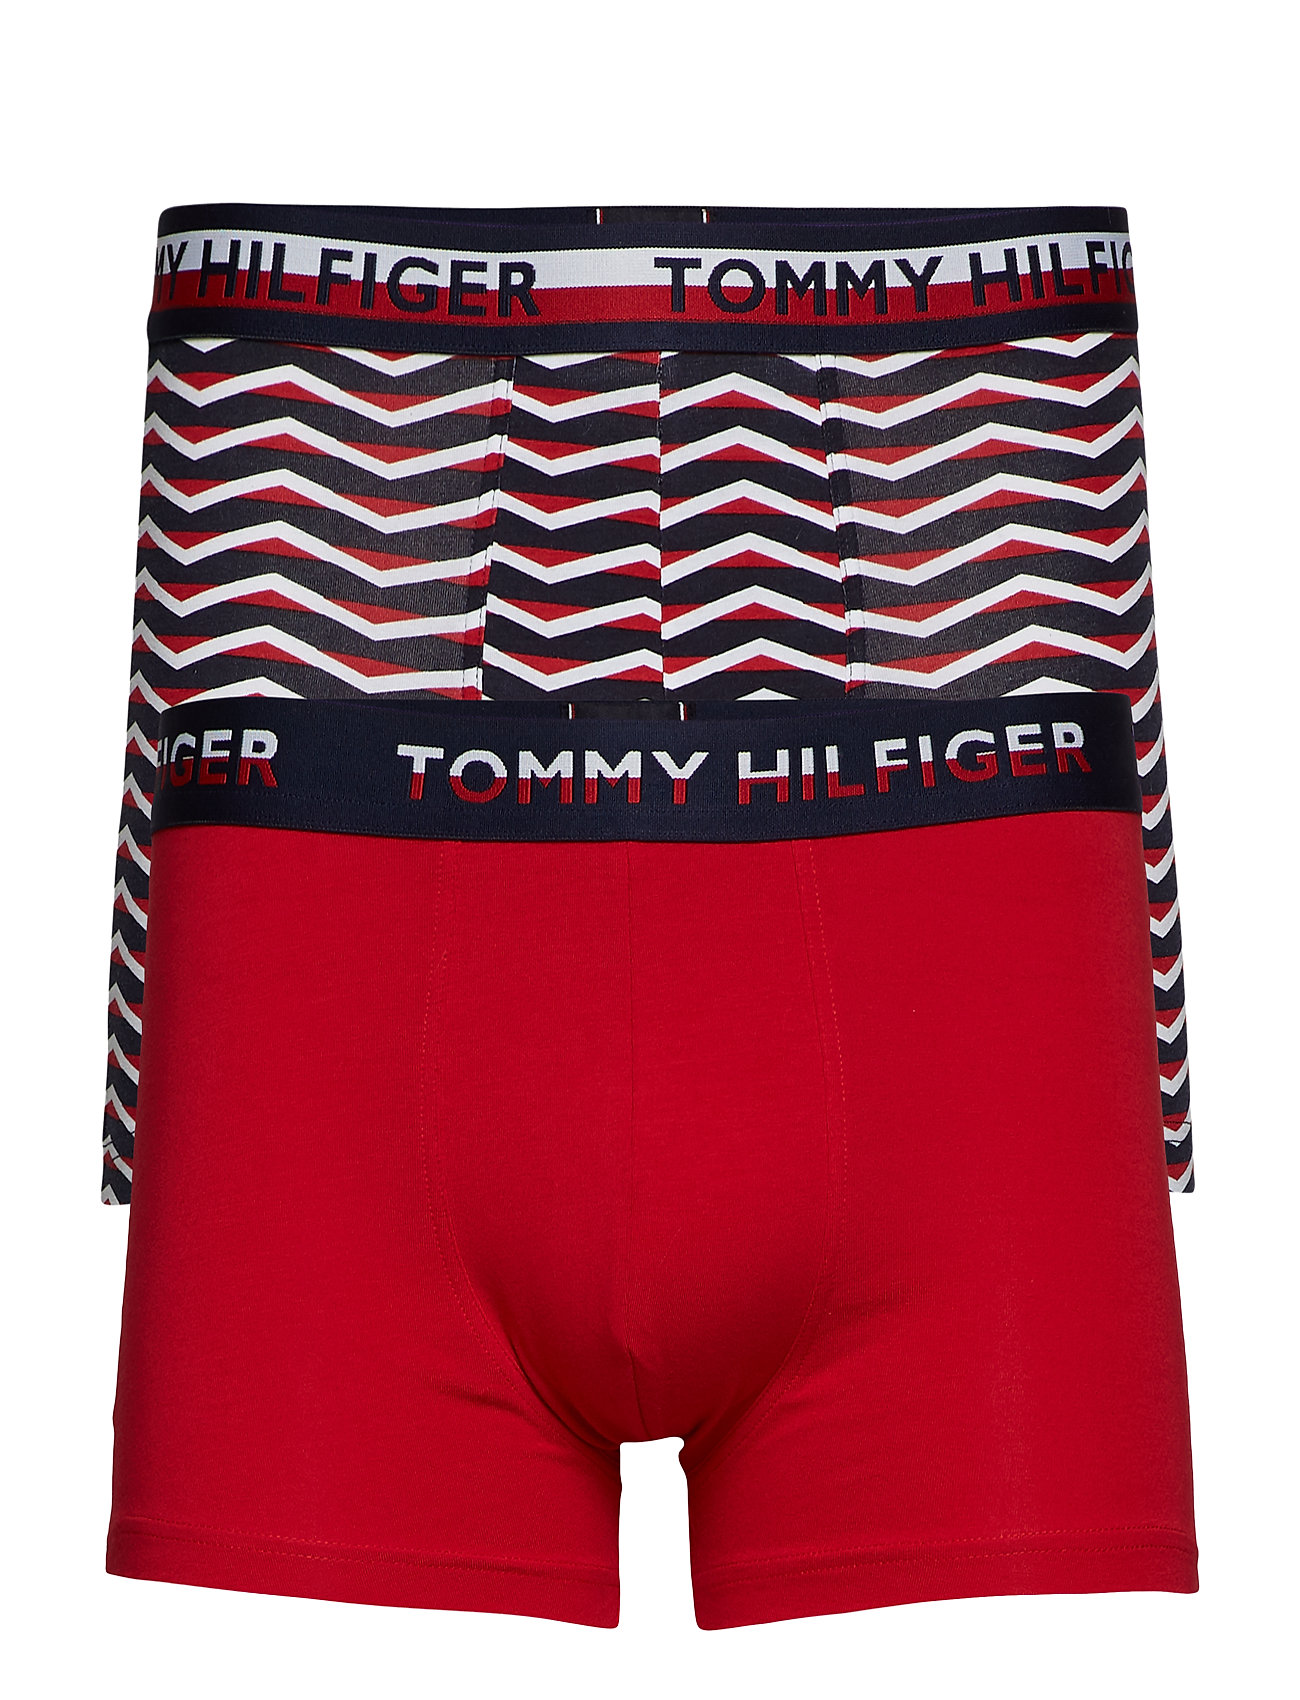 Image of 2p Trunk Print Boxershorts Rød Tommy Hilfiger (3452137001)